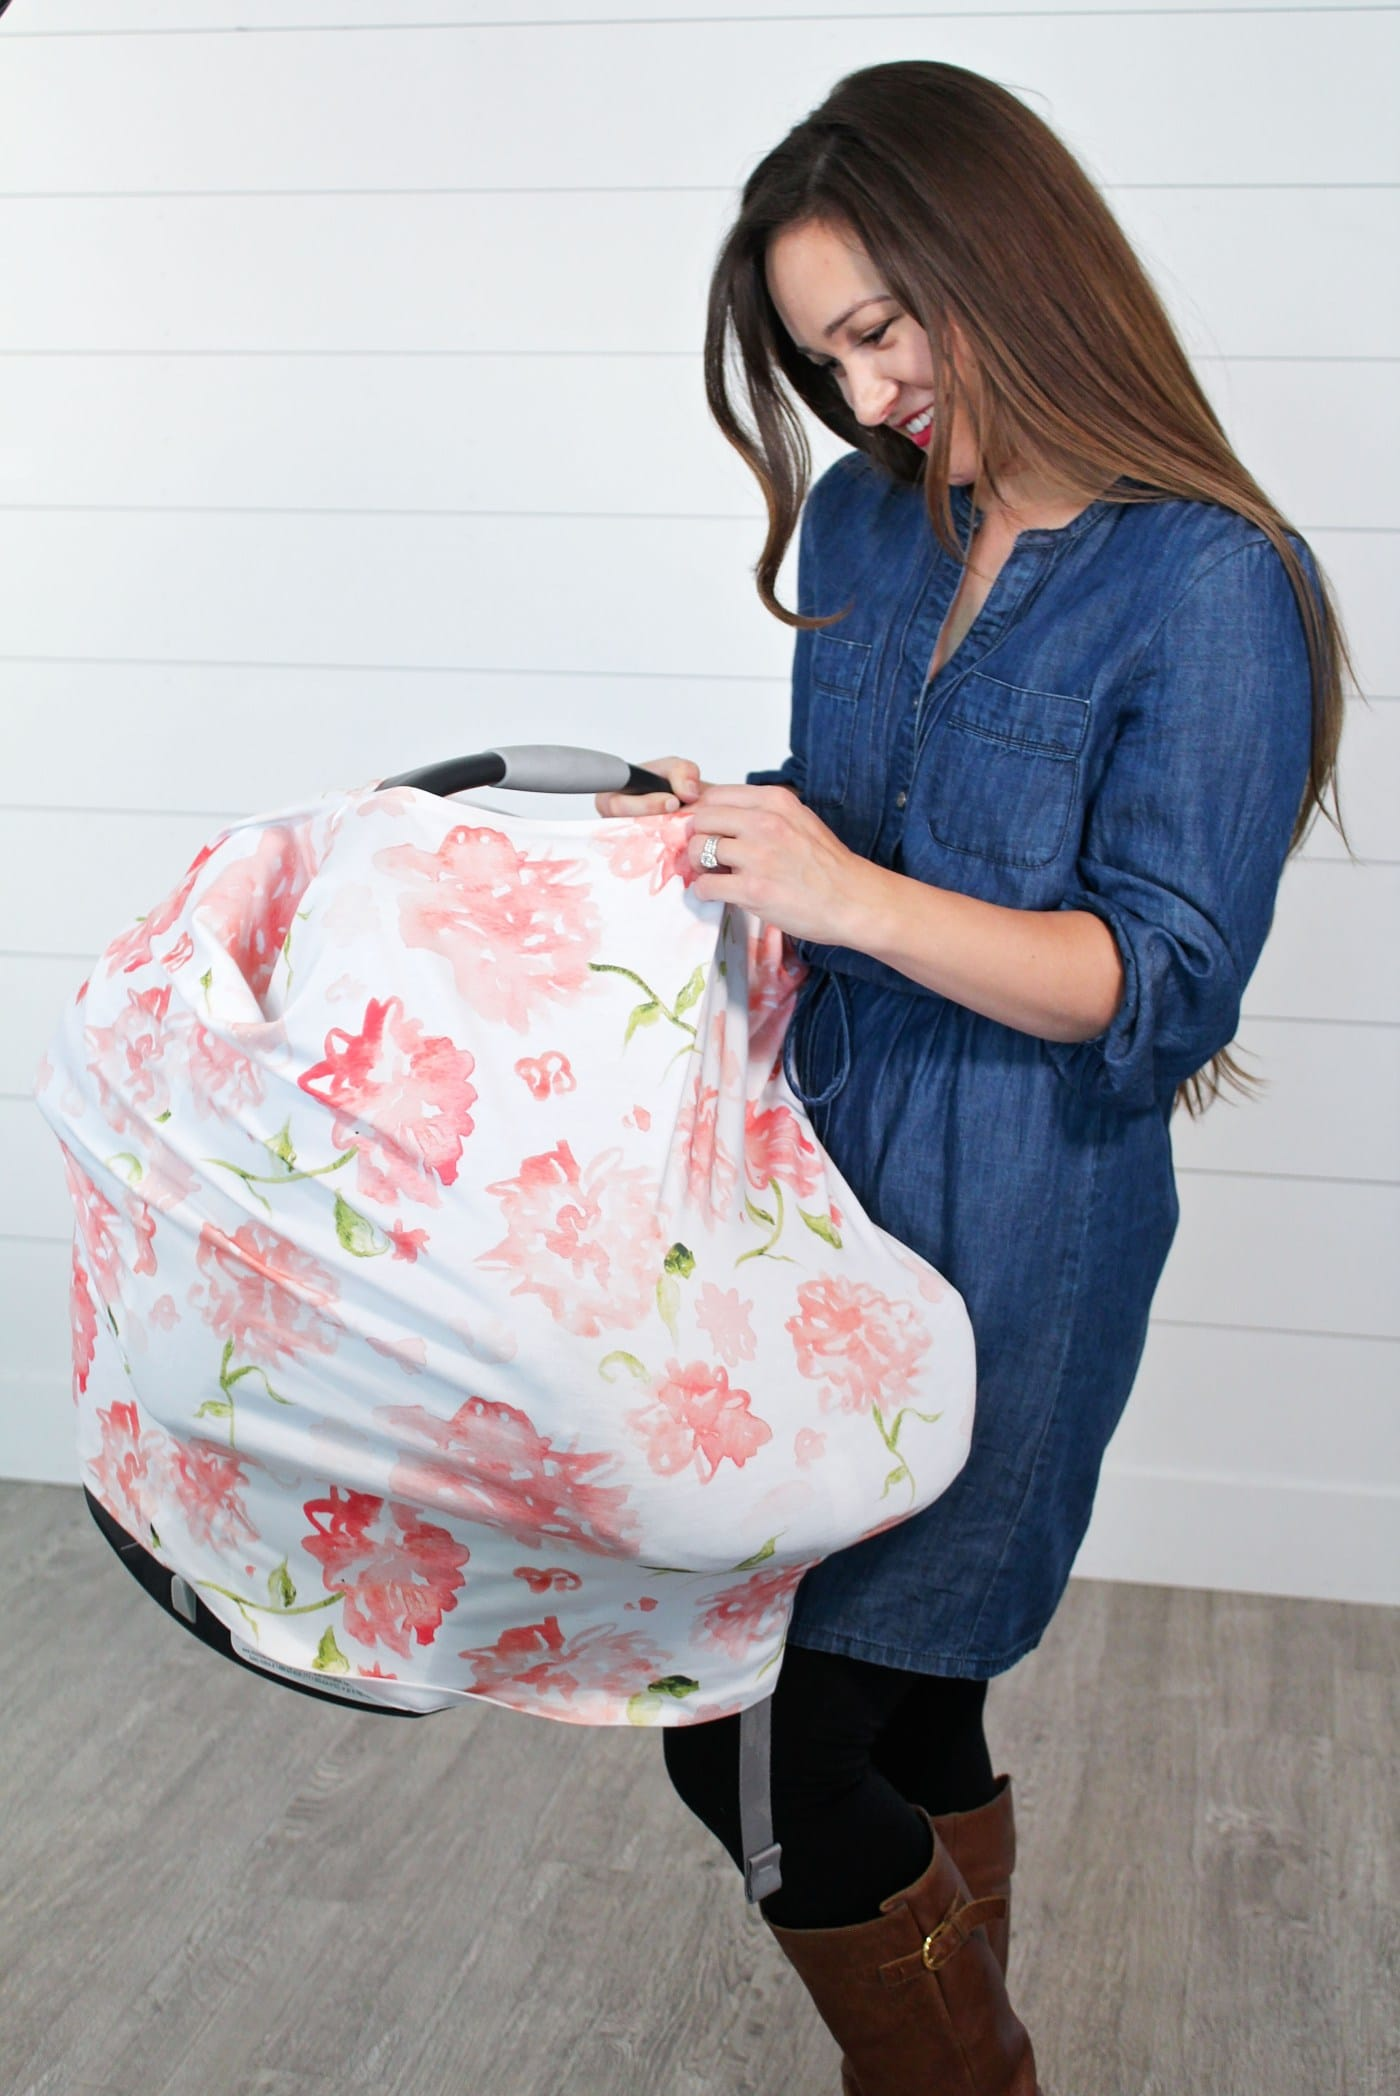 7 in one car seat cover sewing tutorial.